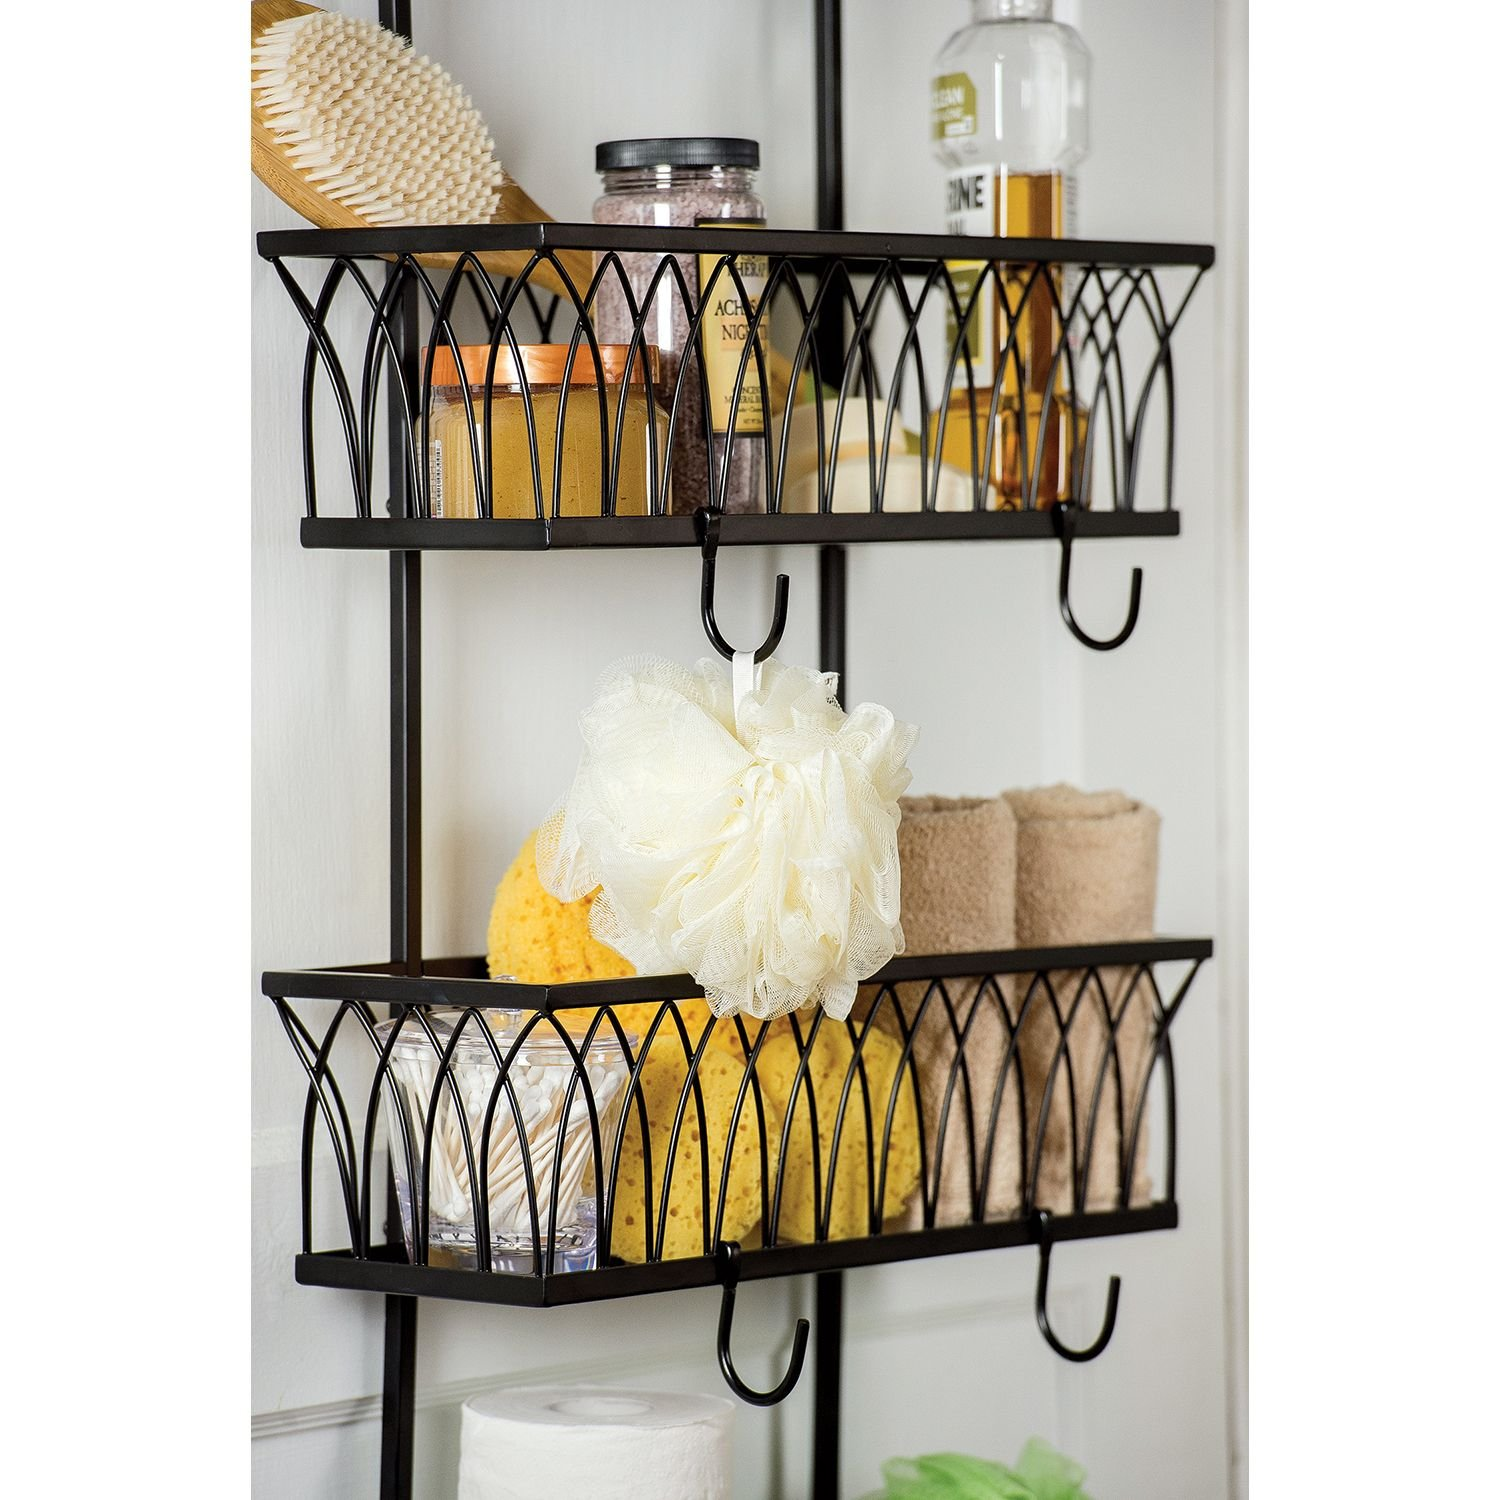 Arch Over The Door 3 Basket Organizer by Giftburg Amazon Home